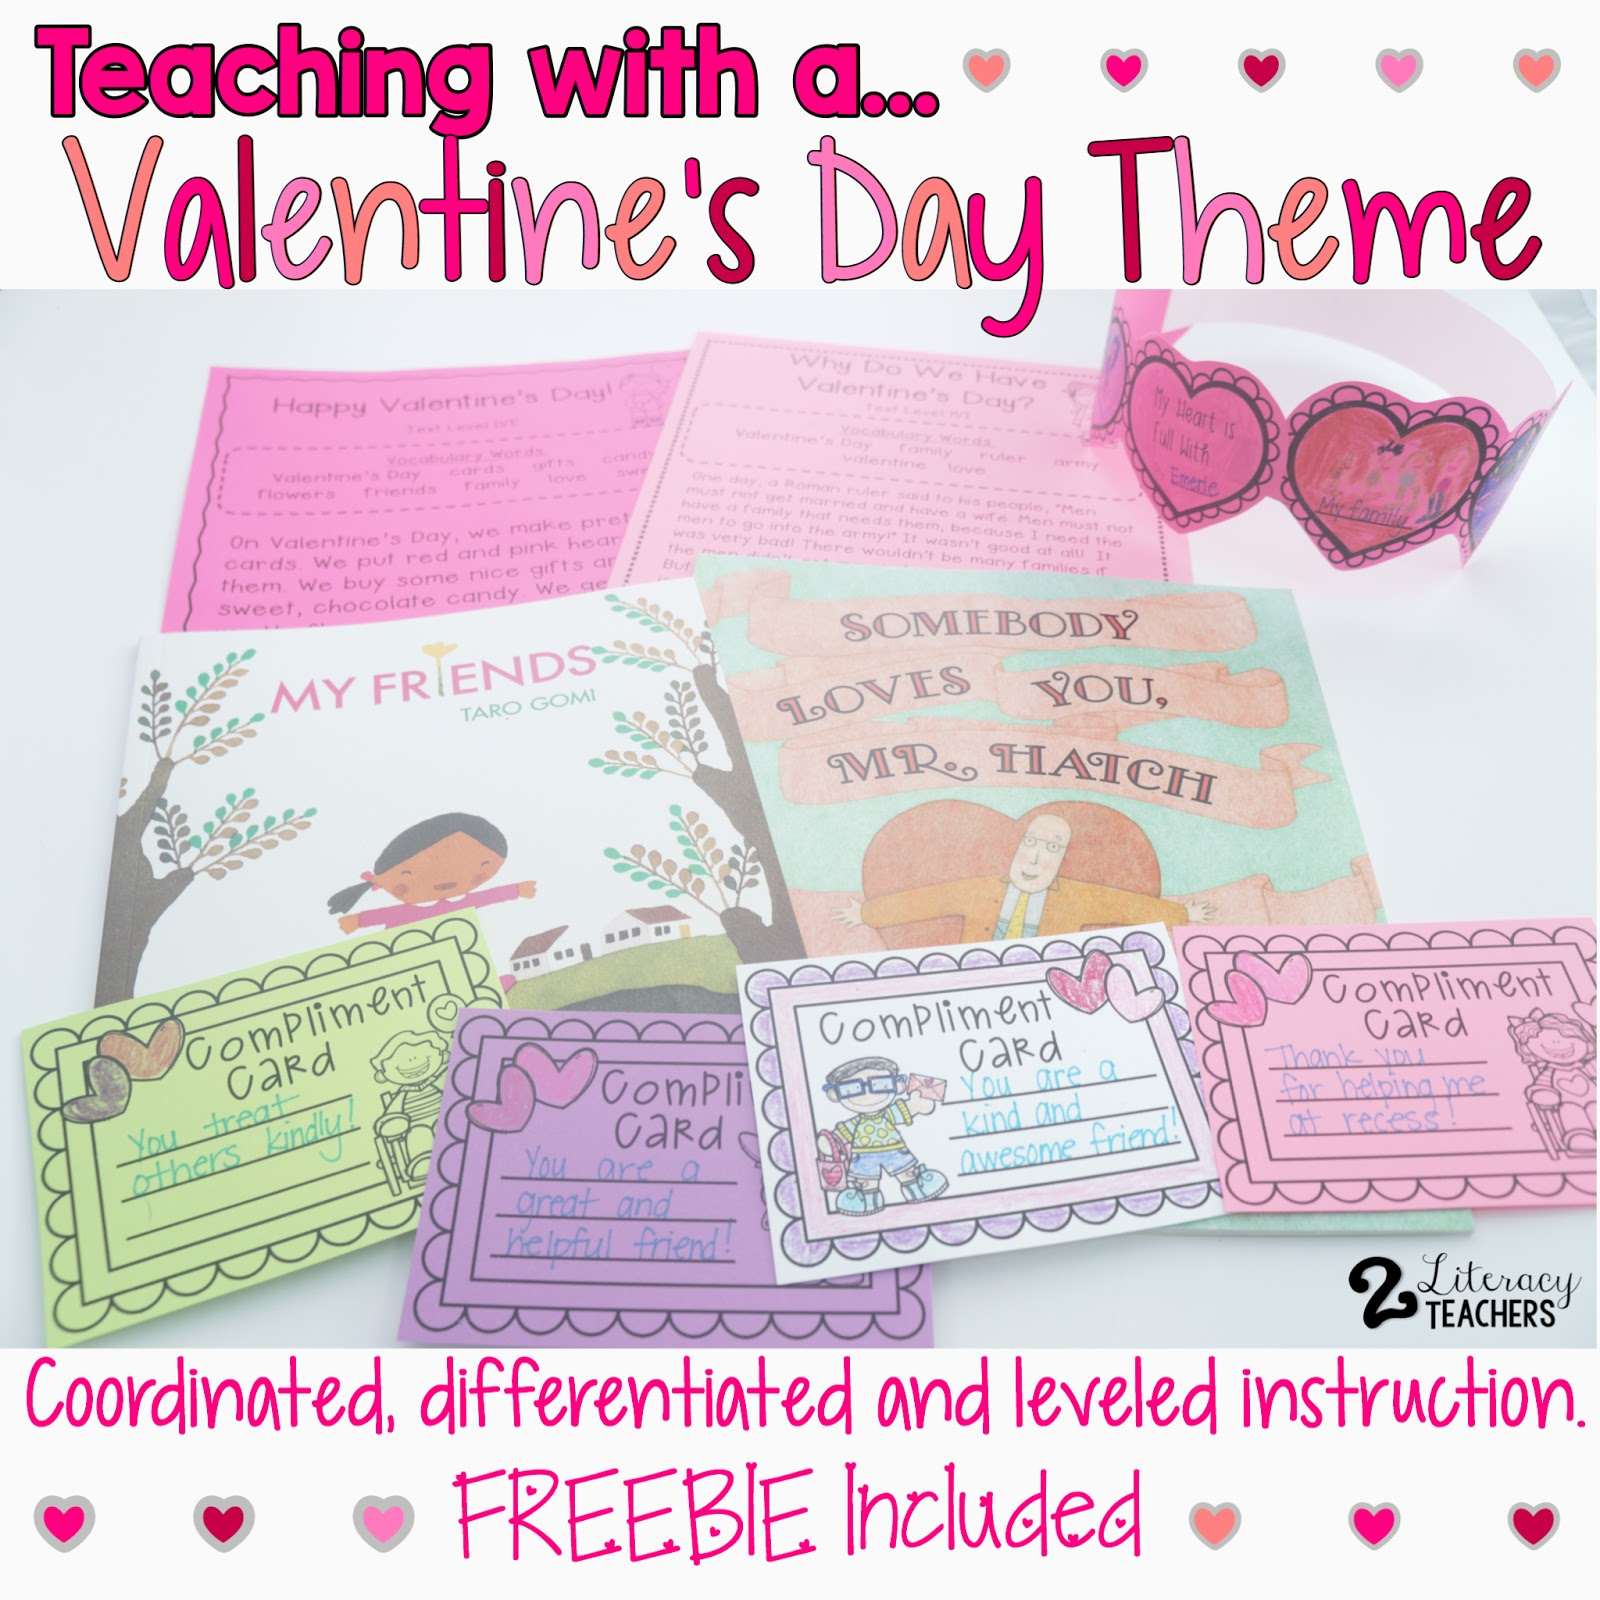 Teaching with a Valentine's Day Theme- Differentiated and Leveled Instruction with a Freebie!